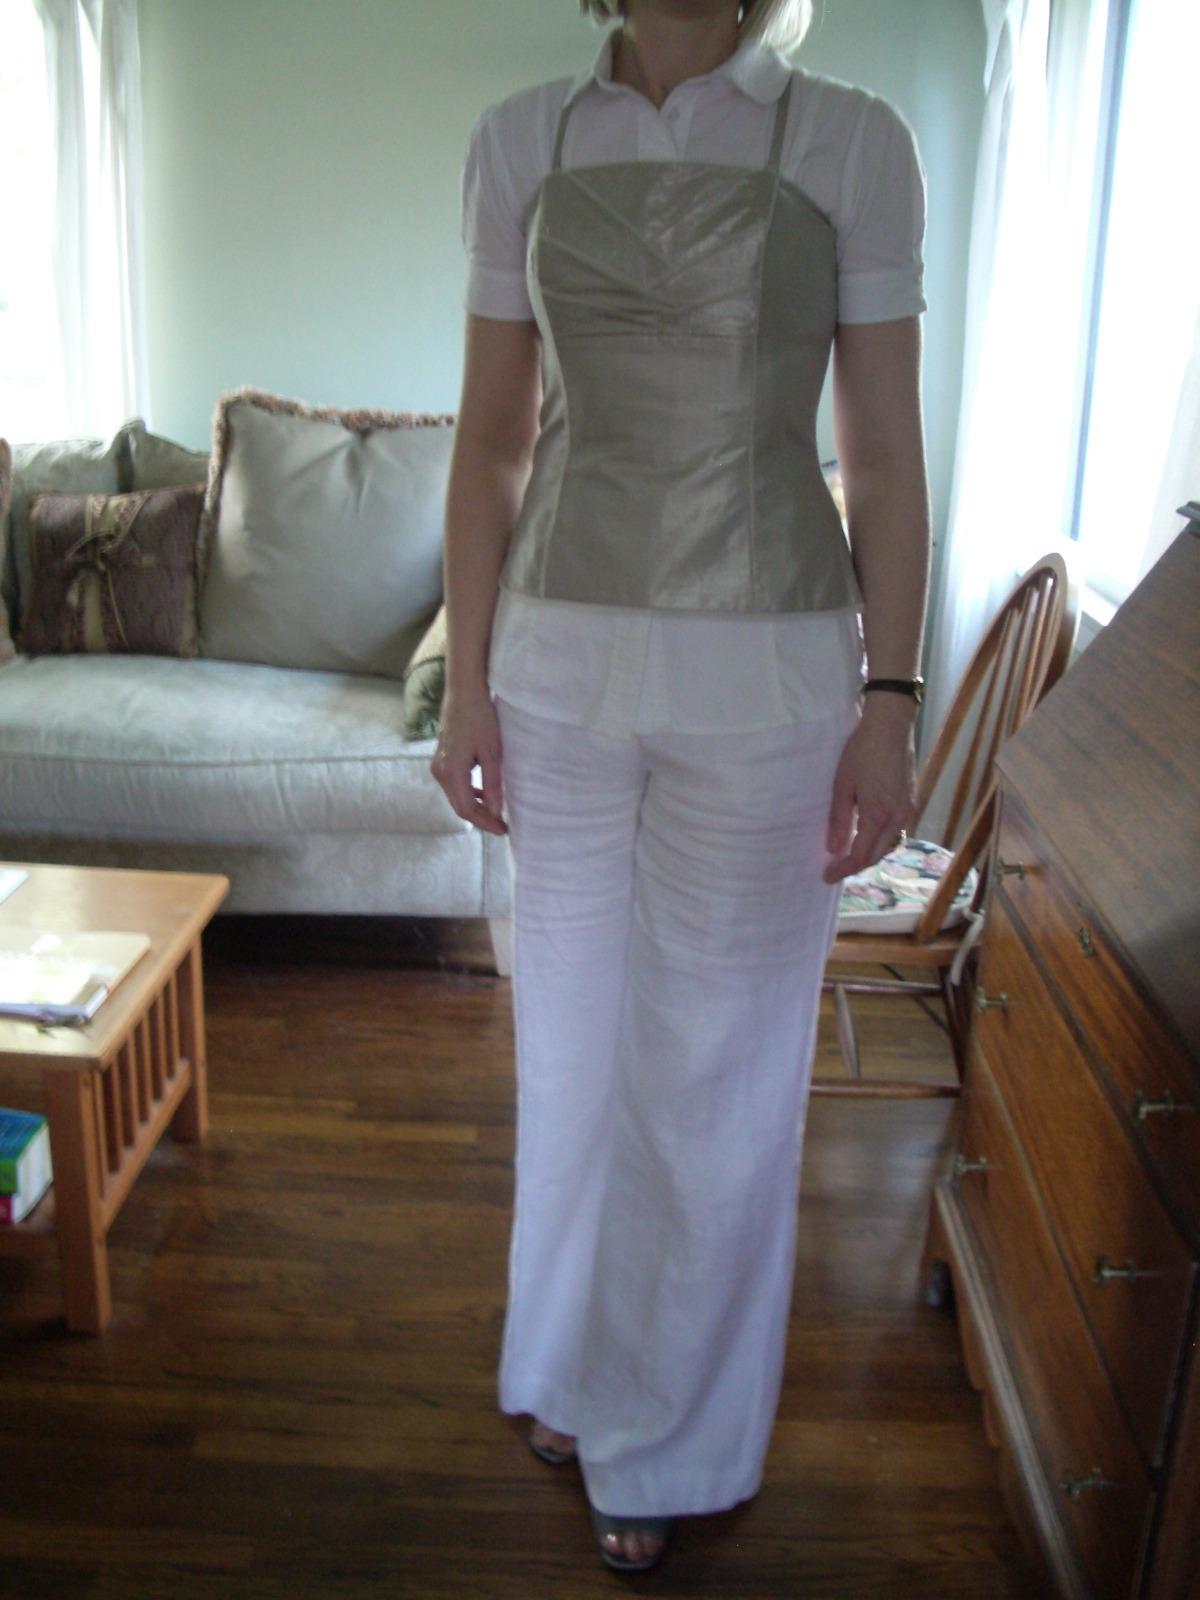 semi casual semi casual is a dress code in the american context it is ...